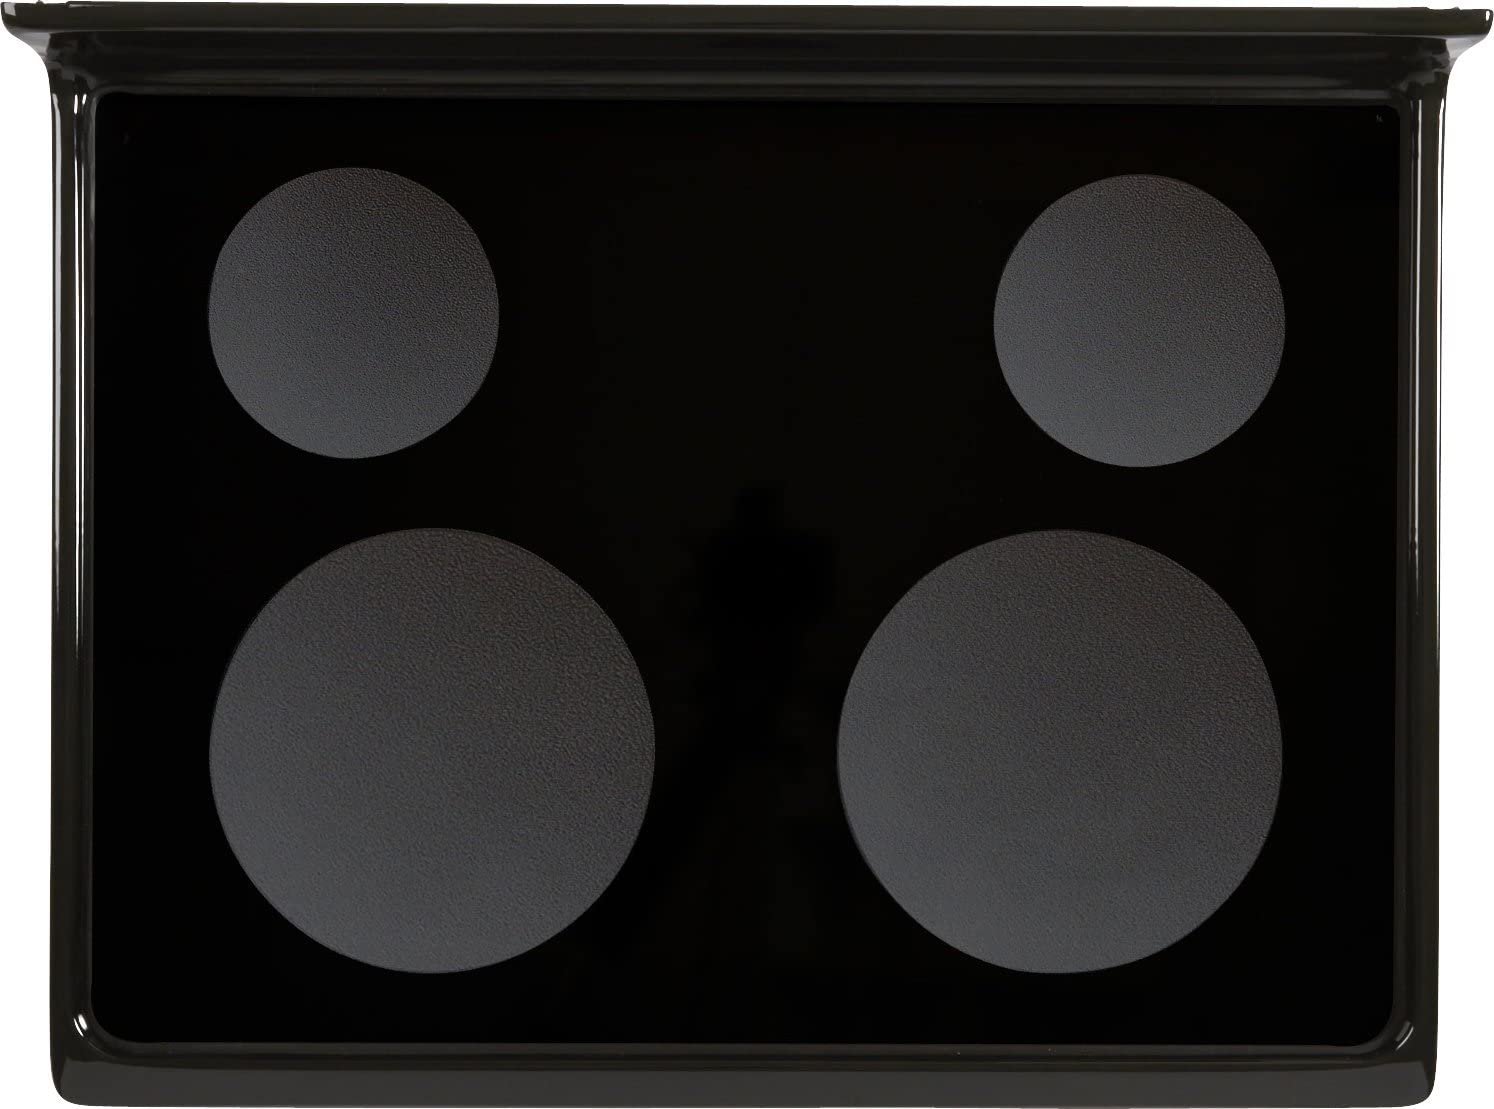 GENUINE Electrolux 316456238 Cooktop Replacement